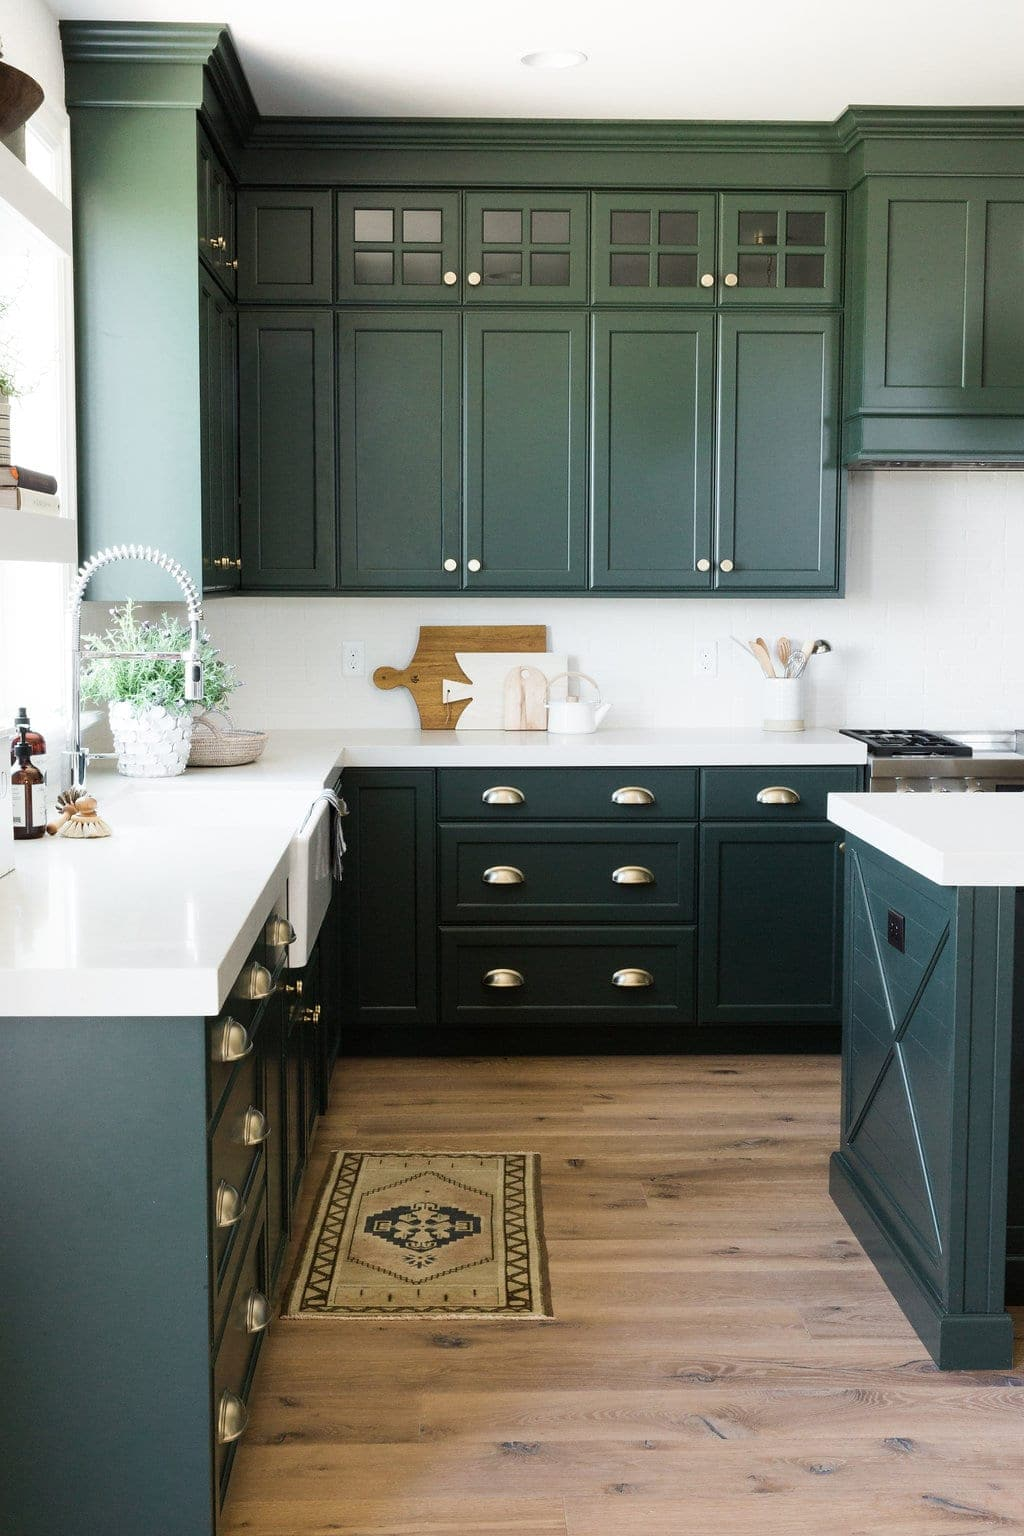 Green Kitchen Cabinet Inspiration - Bless'er House on kitchen color palettes, kitchen pantry cabinet, furniture colors, kitchen pantry cabinets, cottage kitchen colors, choosing kitchen cabinets, kitchen color selector, kitchen design, rustic kitchen cabinets, kitchen wall colors, refacing kitchen cabinets, kitchen remodel, kitchen backsplash, kitchen cabinets product, kitchen base cabinets, living room colors, kitchen color combinations, green kitchen colors, how to install kitchen cabinets, painting kitchen cabinets, kitchen wall cabinets, how to paint kitchen cabinets, wood colors, kitchen cabinet design software, ceiling colors, kitchen flooring, unfinished kitchen cabinets, black kitchen cabinets, white kitchen cabinets, kitchen island, glazing kitchen cabinets, resurfacing kitchen cabinets, ideas for painting kitchen cabinets, refinishing kitchen cabinets, kitchen cabinet design ideas, kitchen ideas, staining kitchen cabinets,